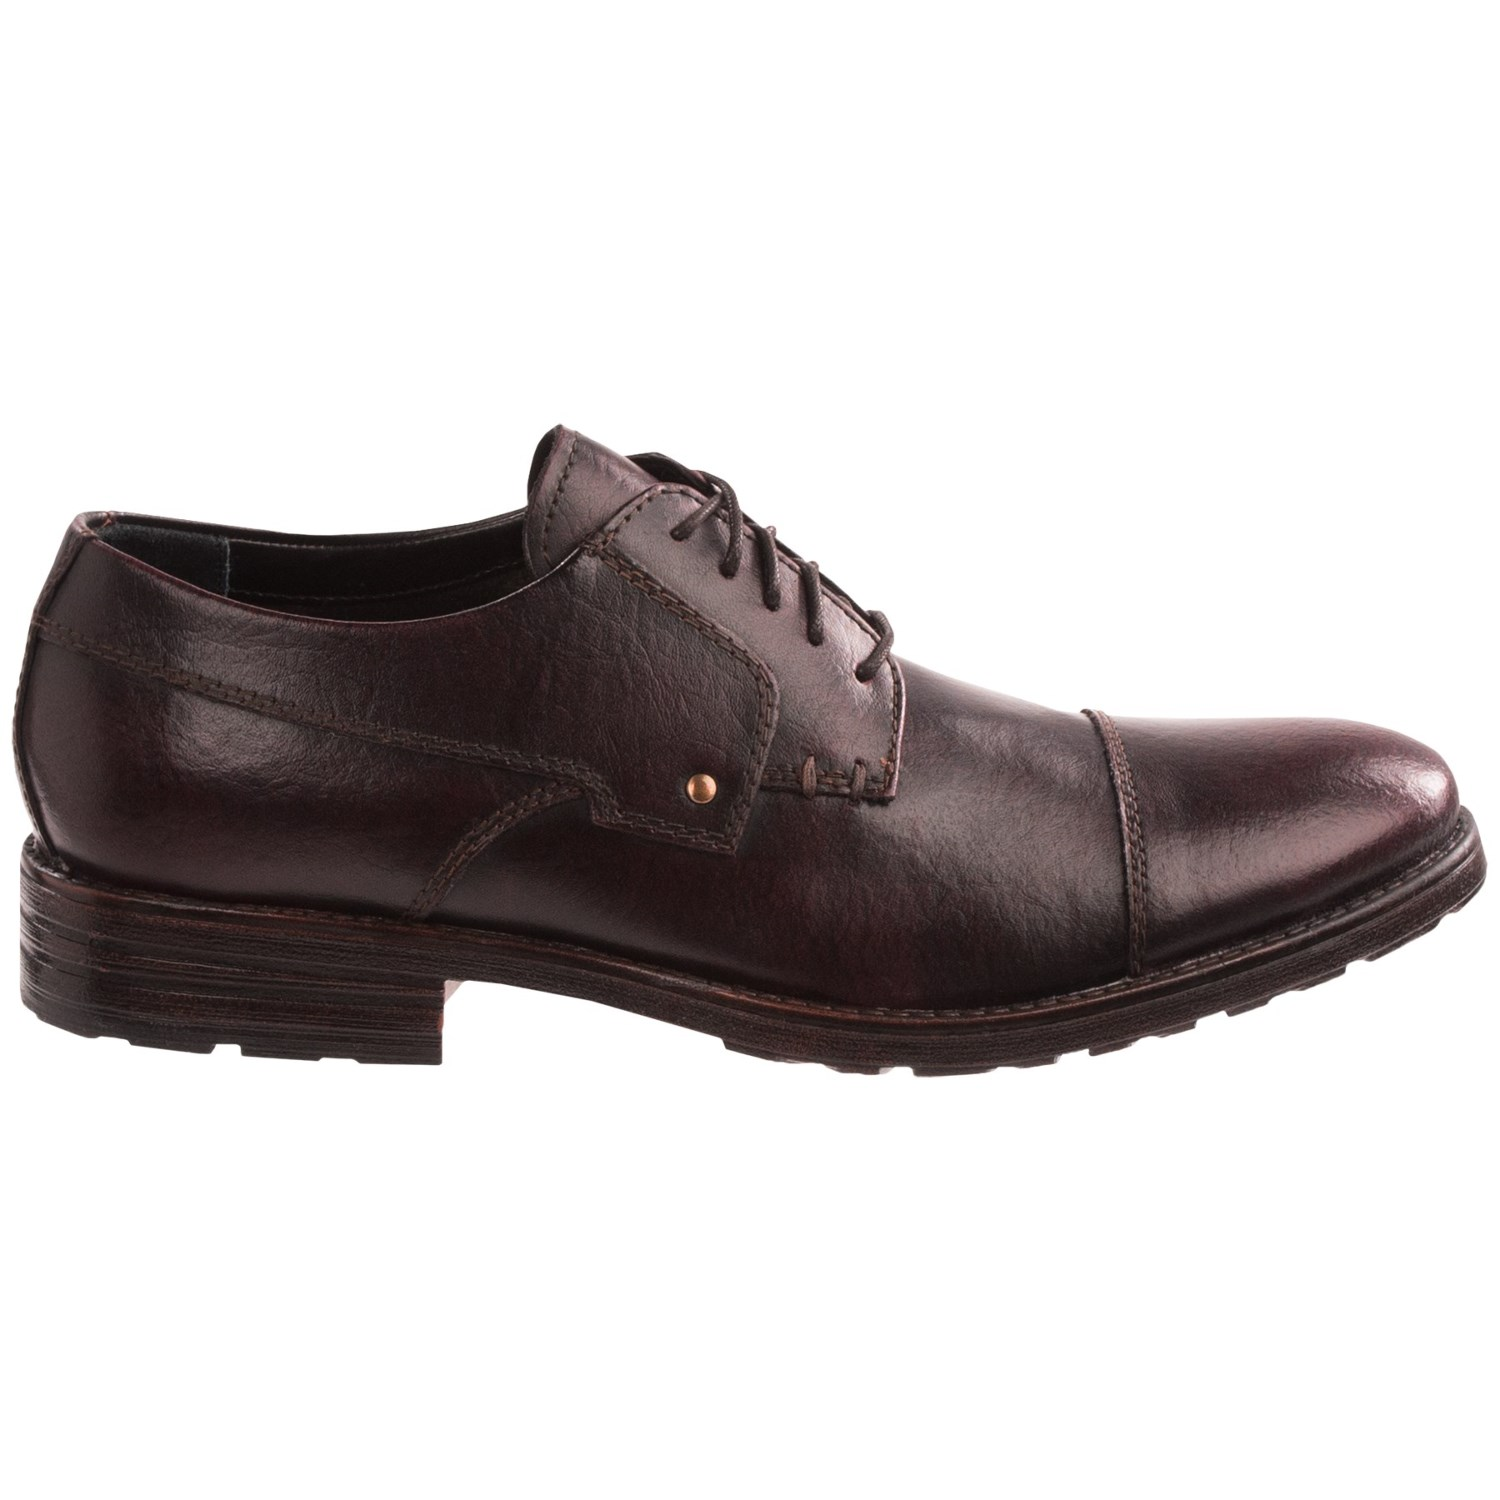 clarks denton cap toe shoes for 7653k save 35